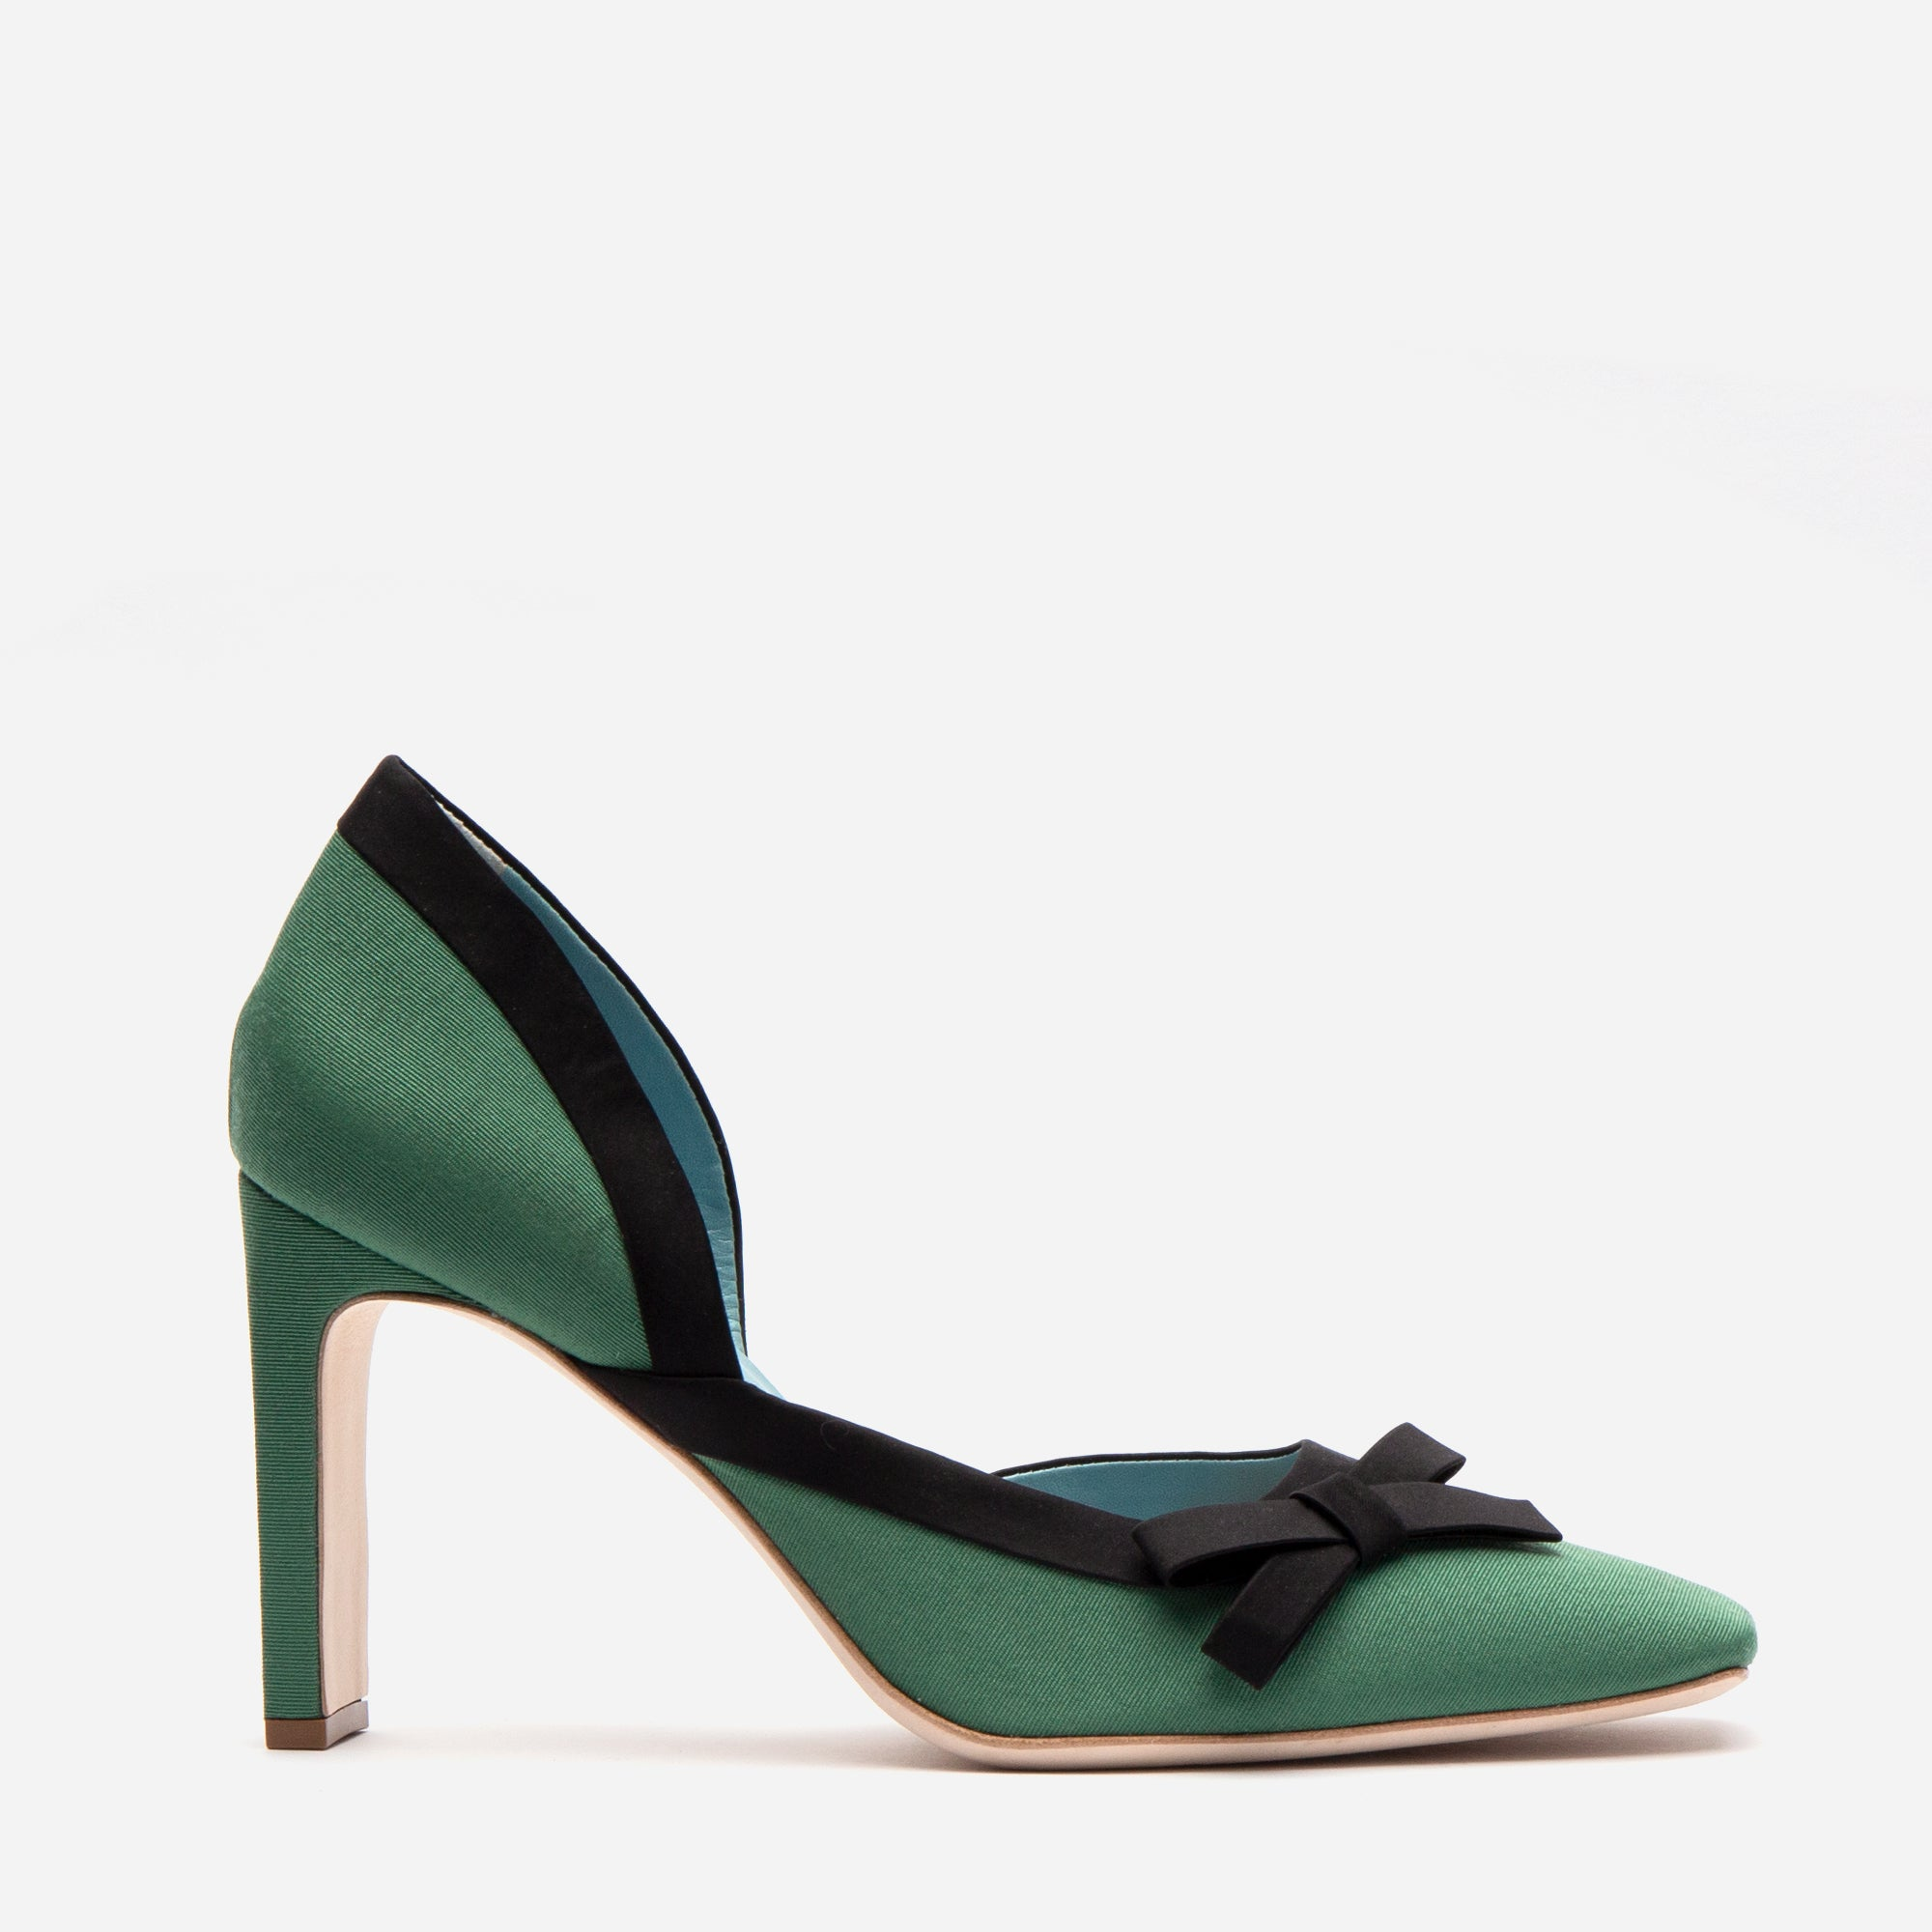 Sinclair Grosgrain Satin Heels Emerald Black *FINAL SALE* - Frances Valentine